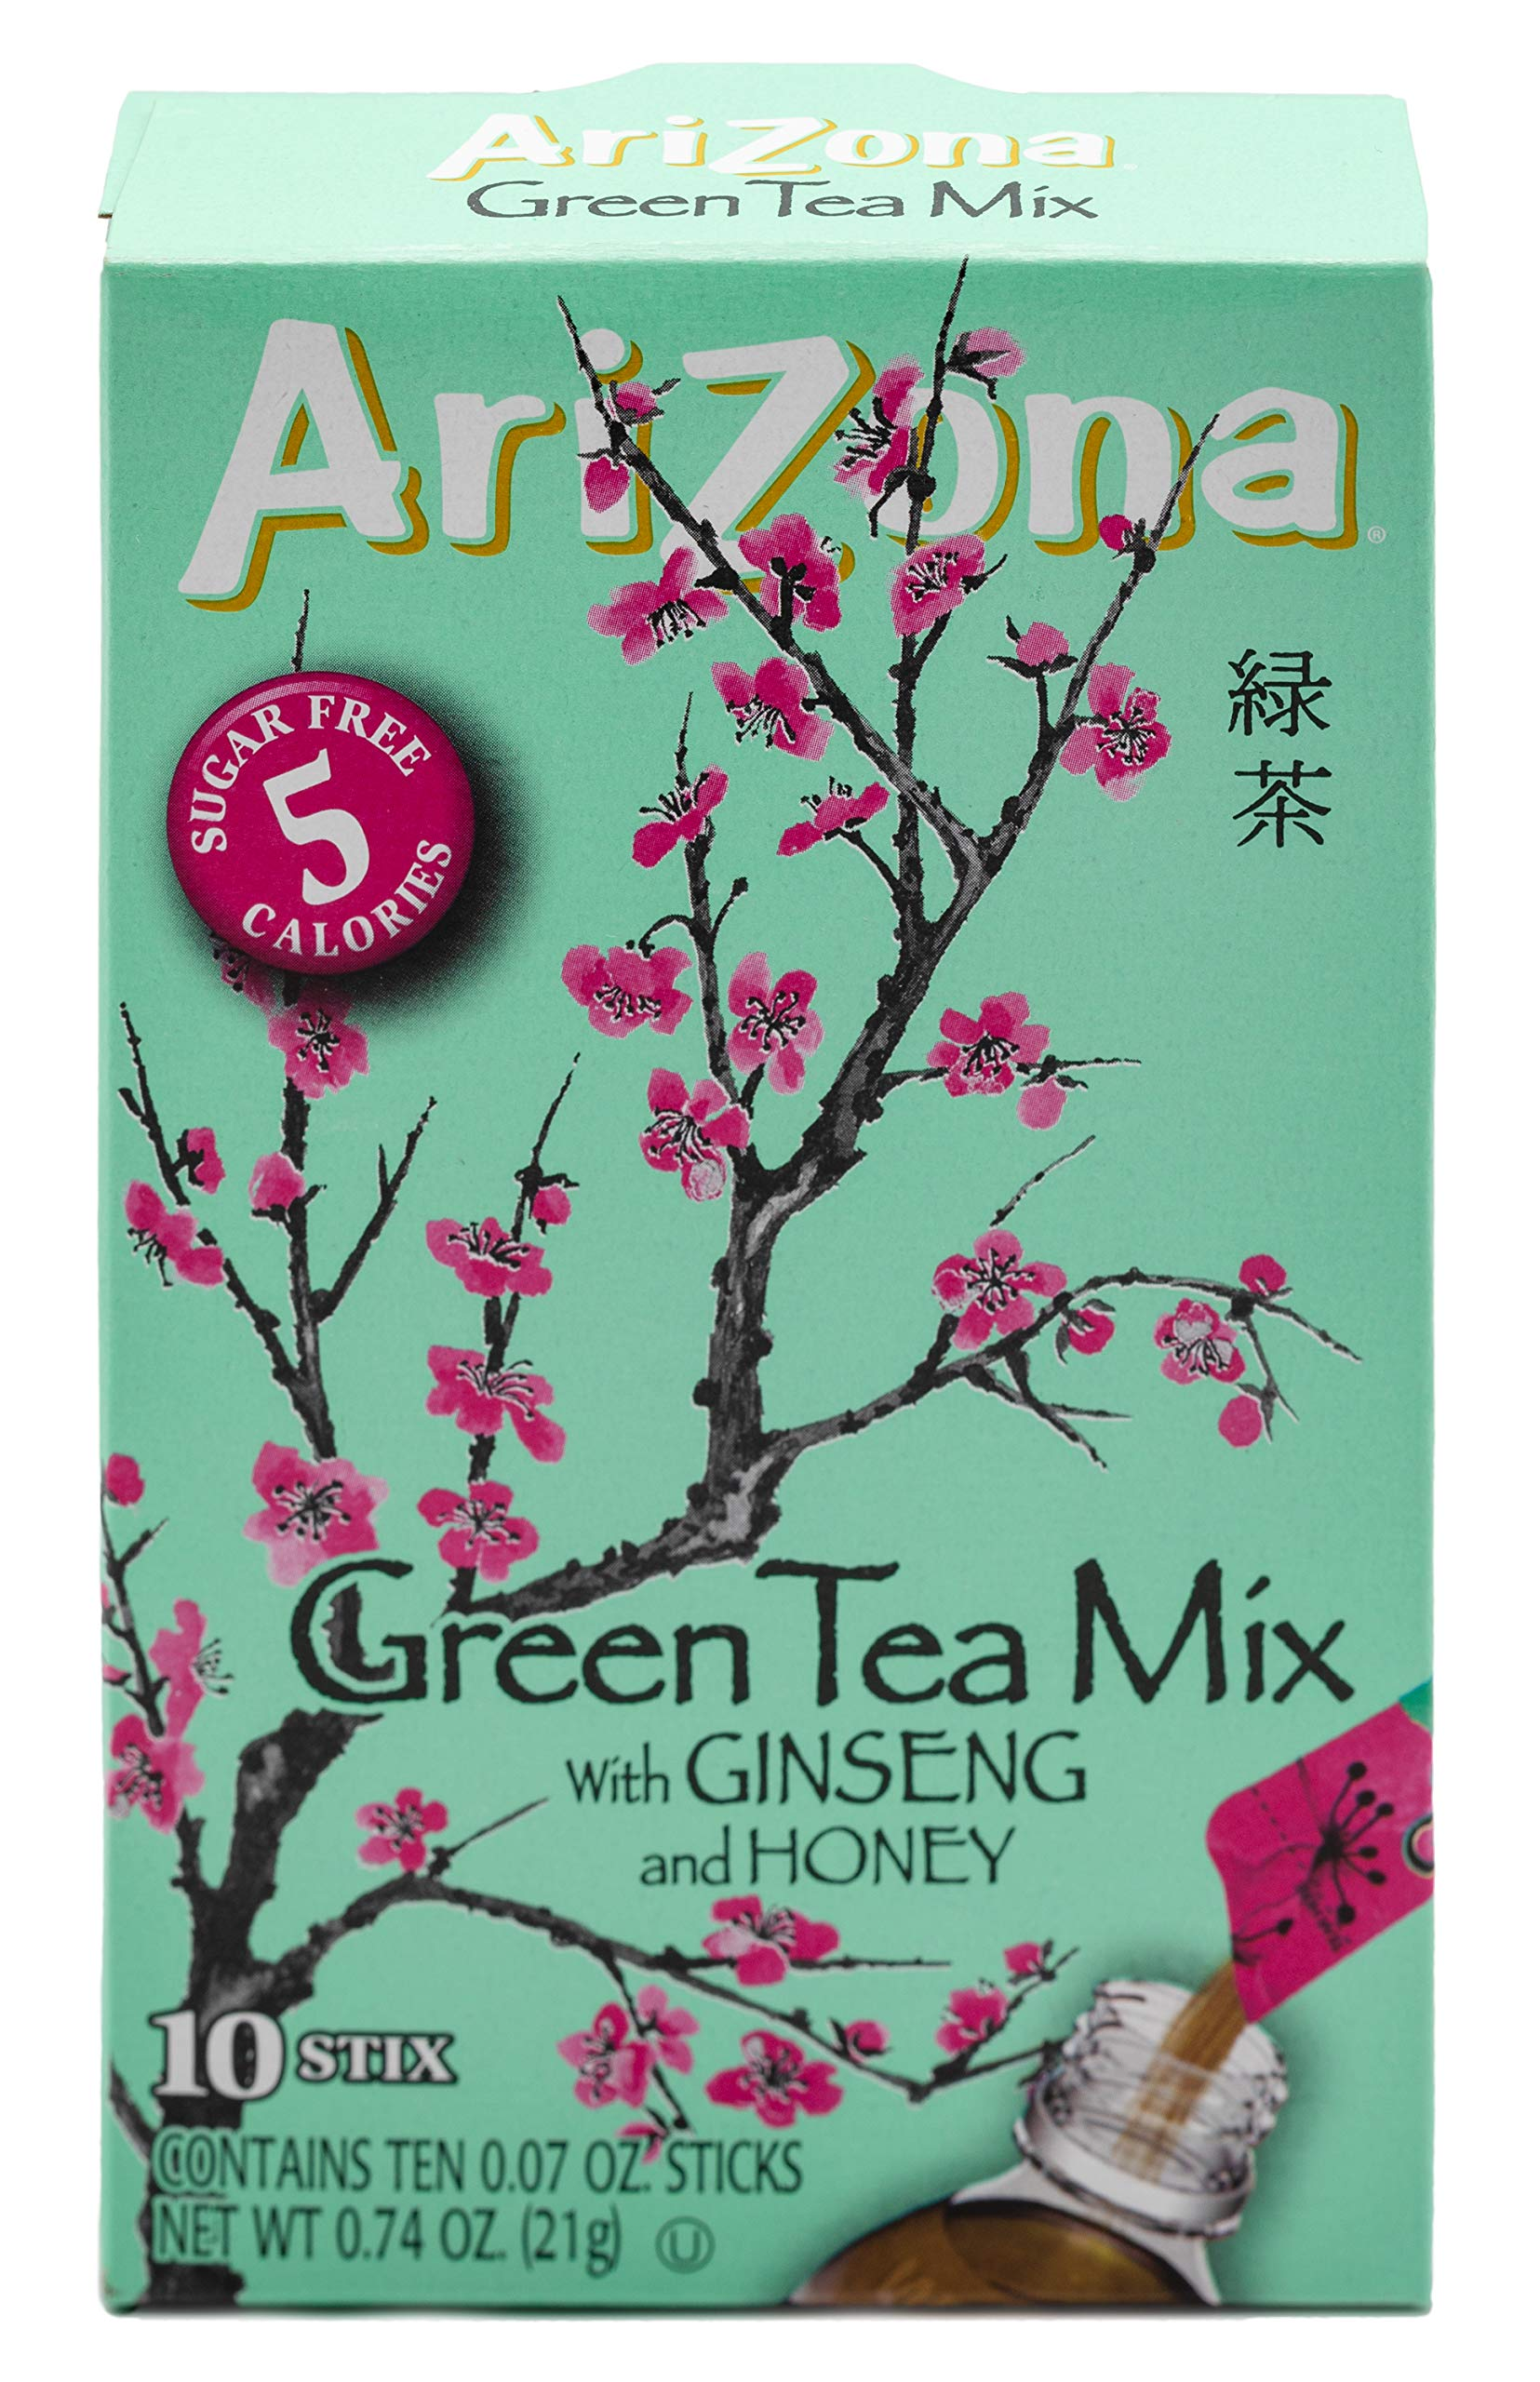 AriZona Green Tea with Ginseng Iced Tea Stix Sugar-Free, Low Calorie Single Serving Drink Powder Packets, Just Add Water for a Deliciously Refreshing Iced Tea Beverage, 10 Count, Pack of 6 by Arizona